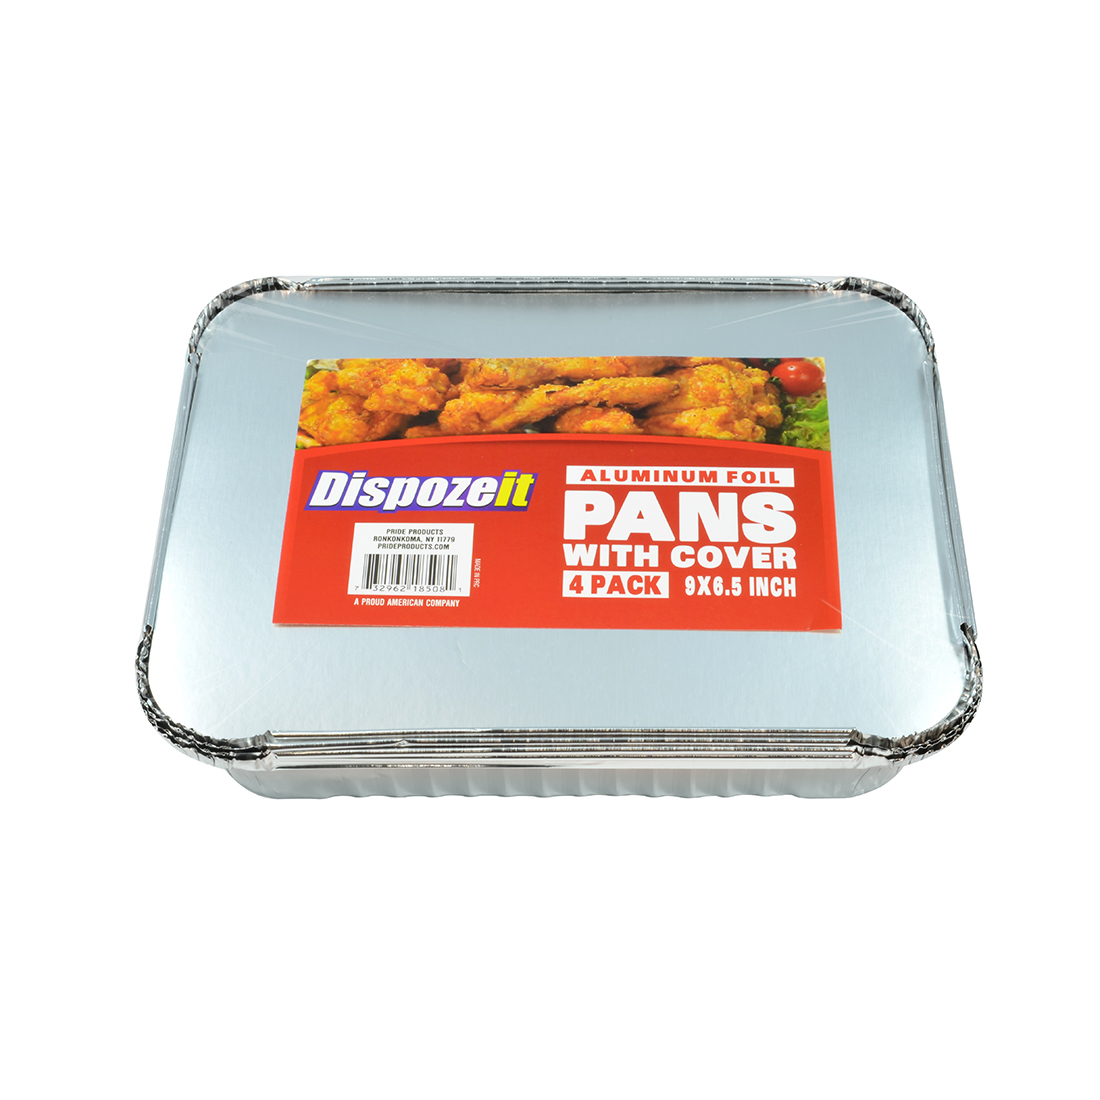 View PRIDE FOIL PAN WITH COVER 4 PACK RECTANGULAR 9 X 6.5 X 2 INCHES